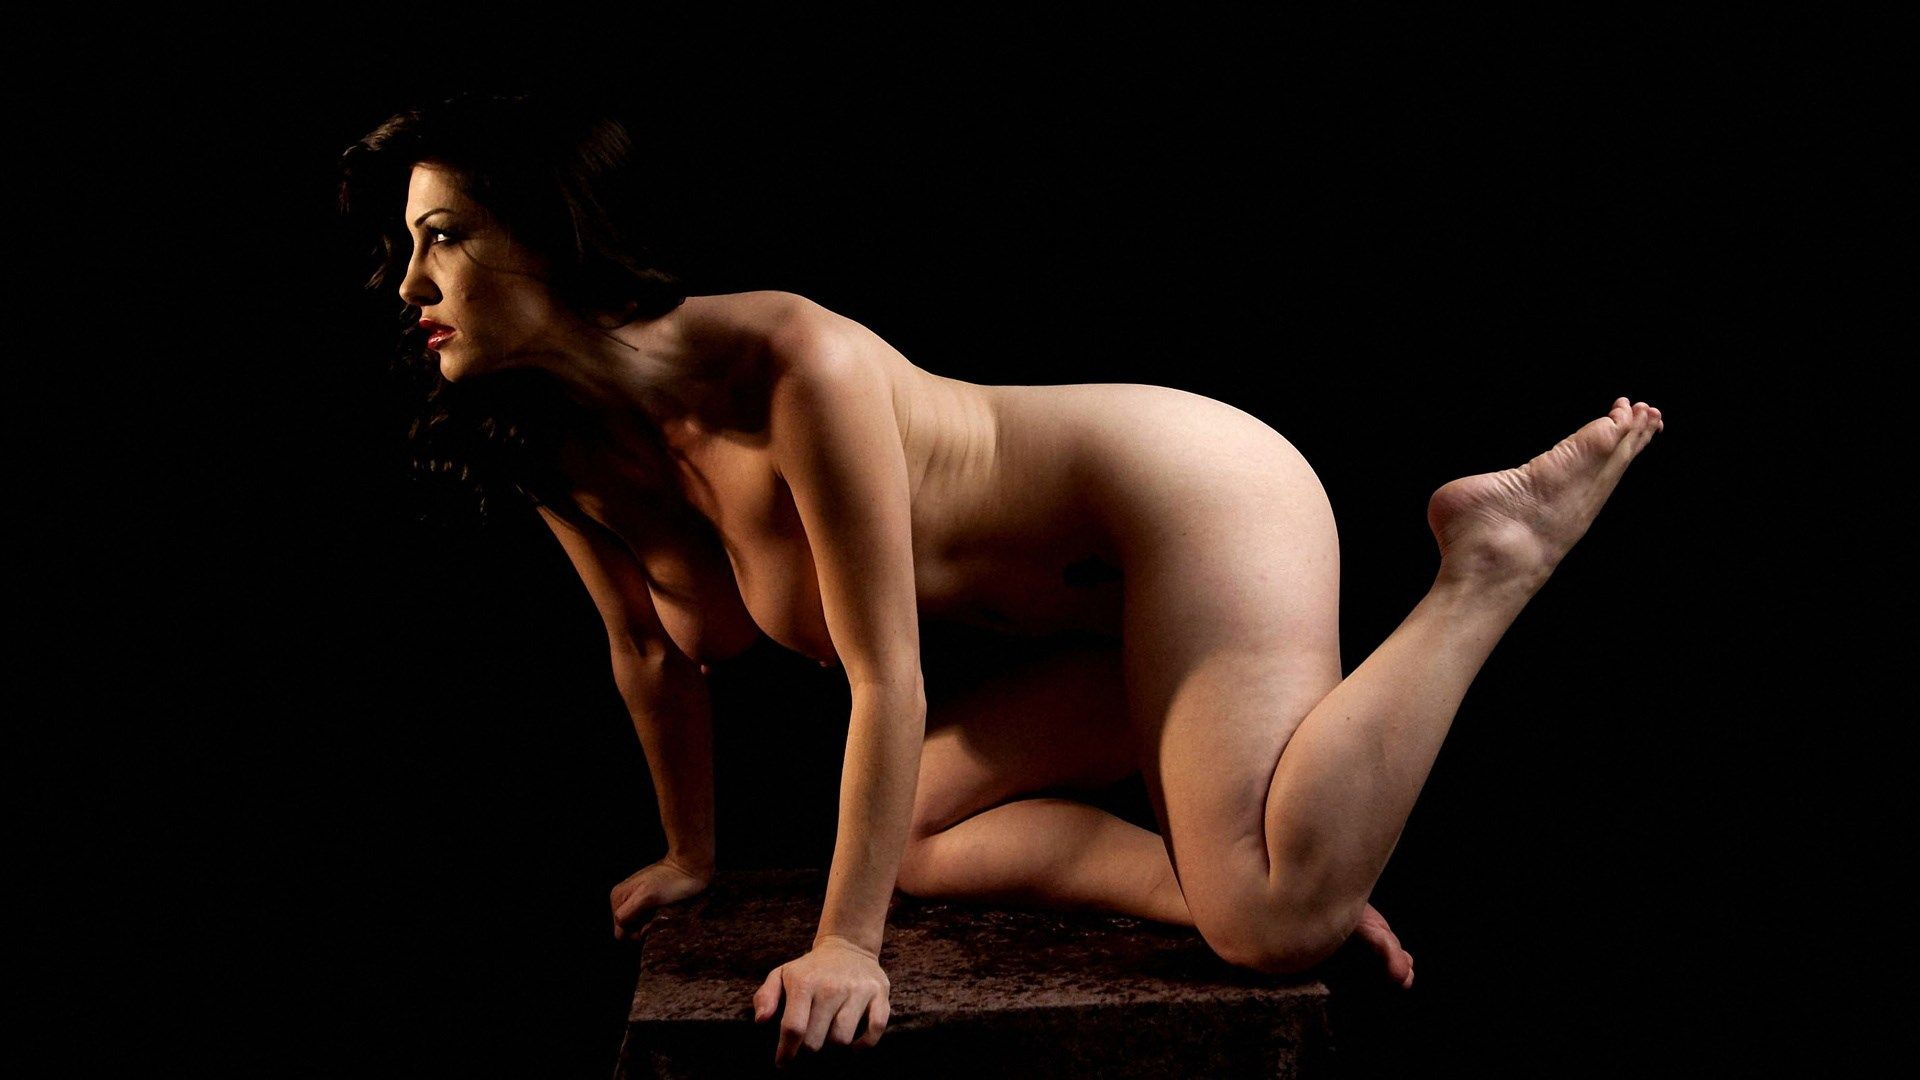 Posing nude for